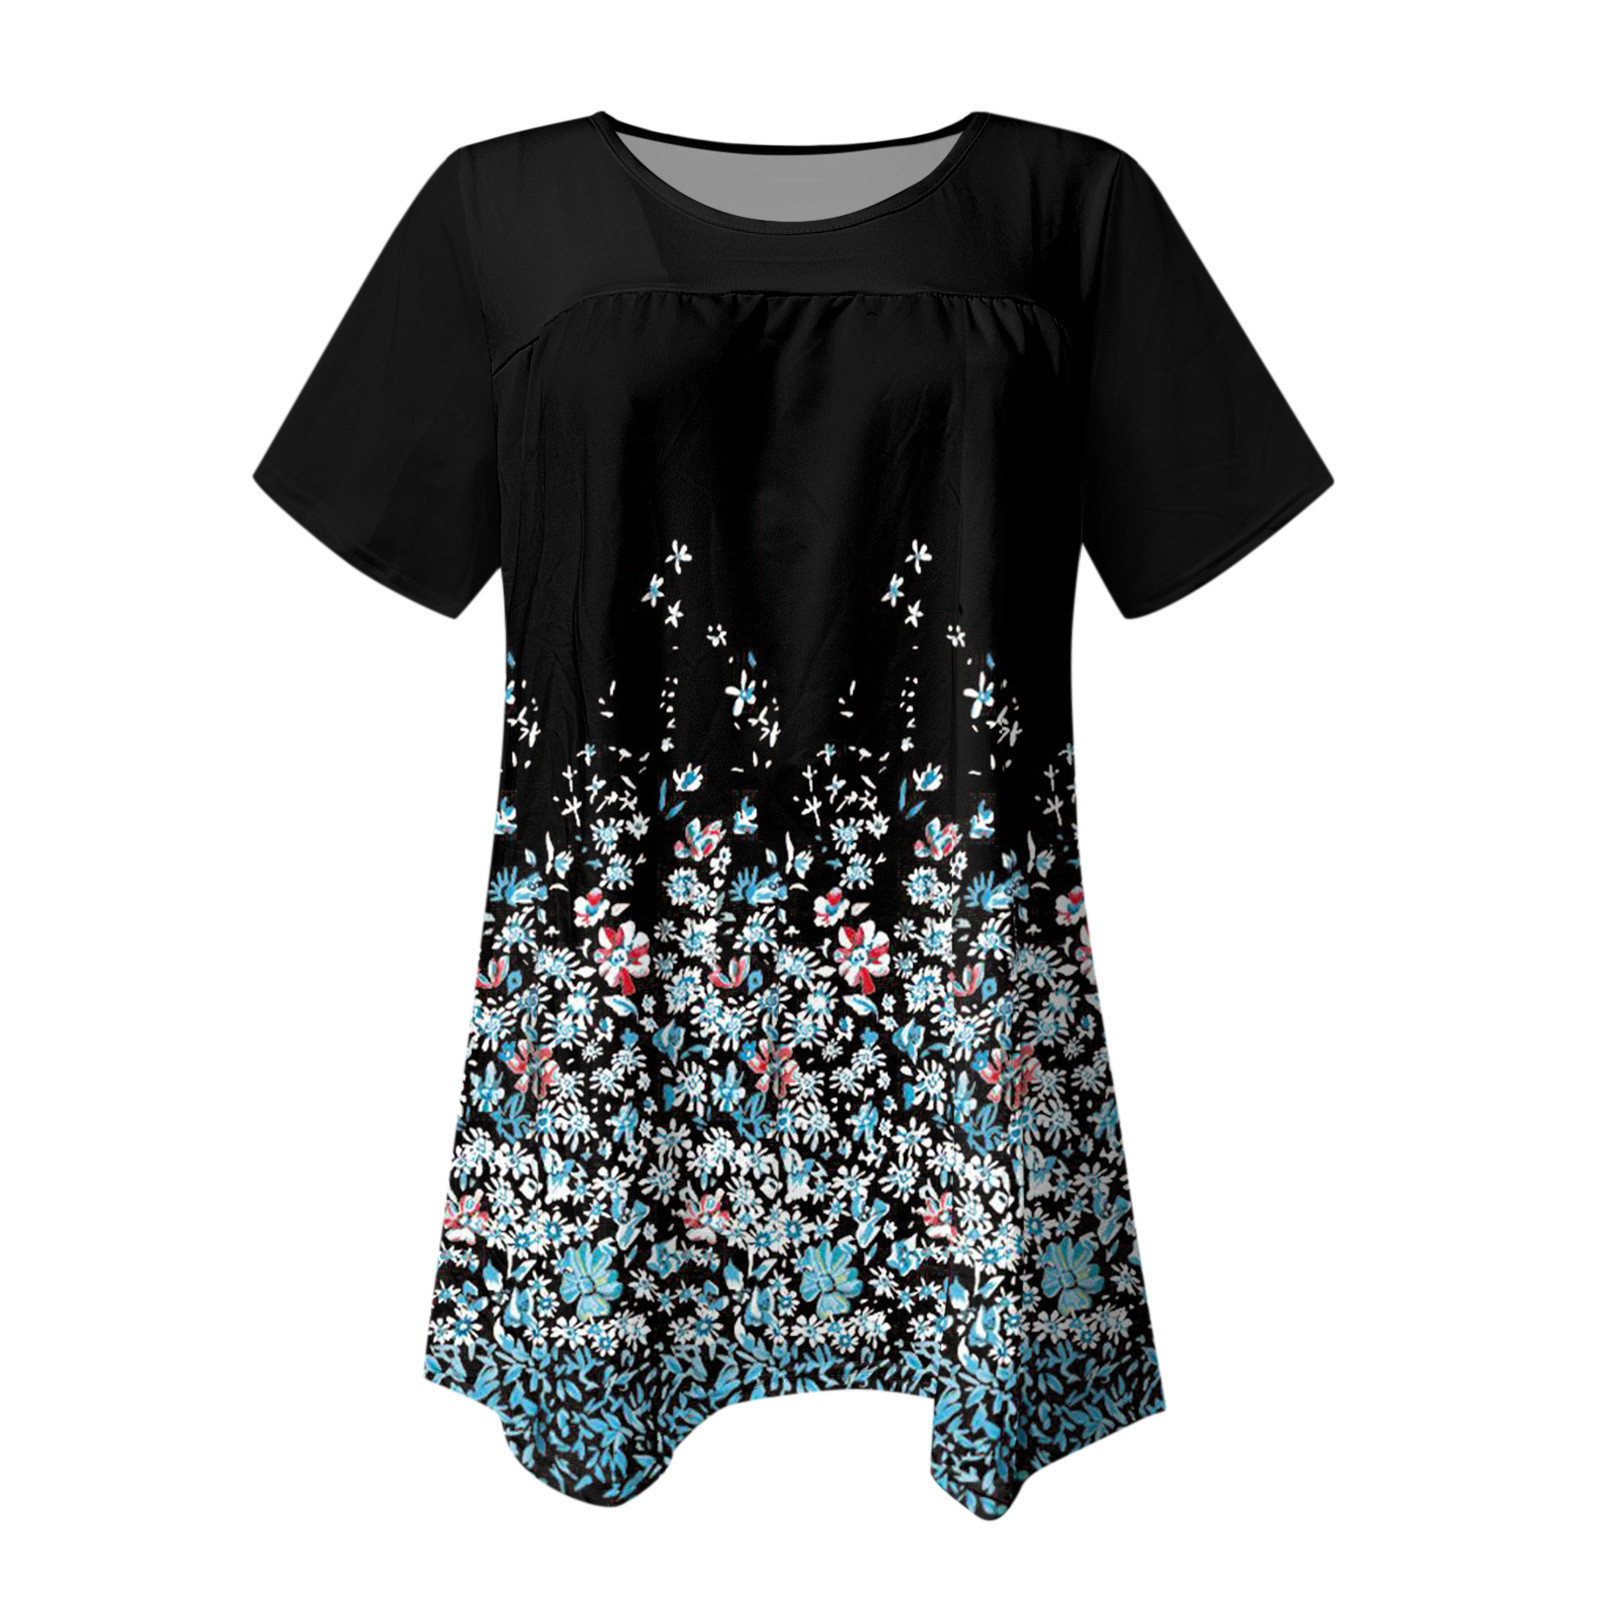 Floral Printed Casual Loose Women Tshirt O Neck Pleated Patchwork Short Sleeved Graphic Tee Stretch Basic Top Tunics Футболка  5